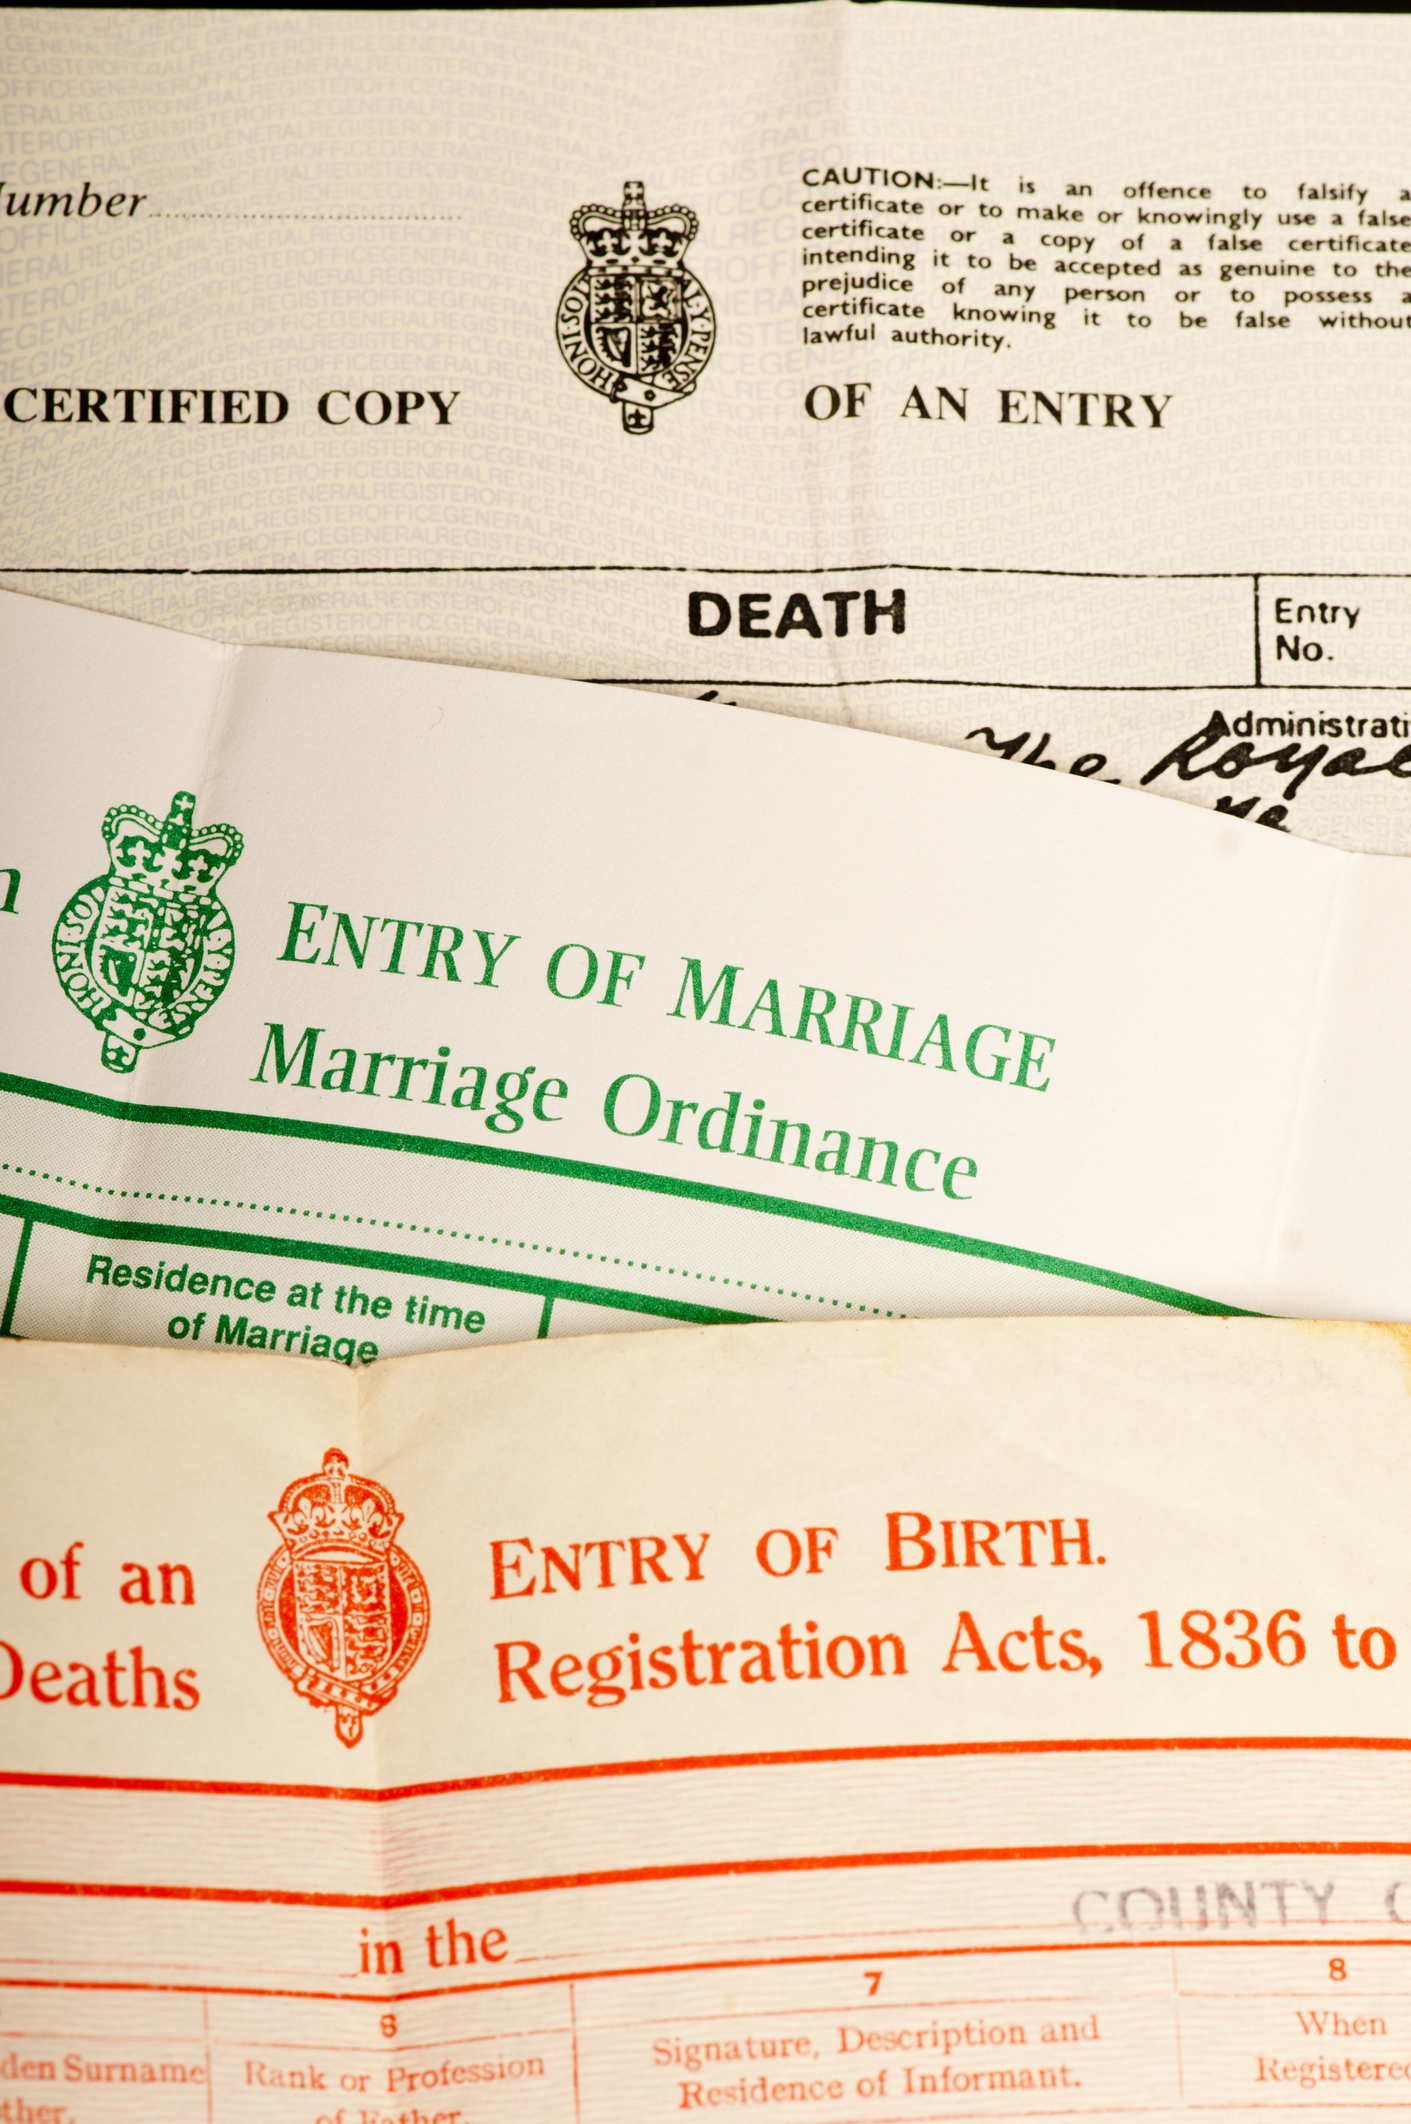 How to Find Death Records in Michigan, Michigan Death Records,